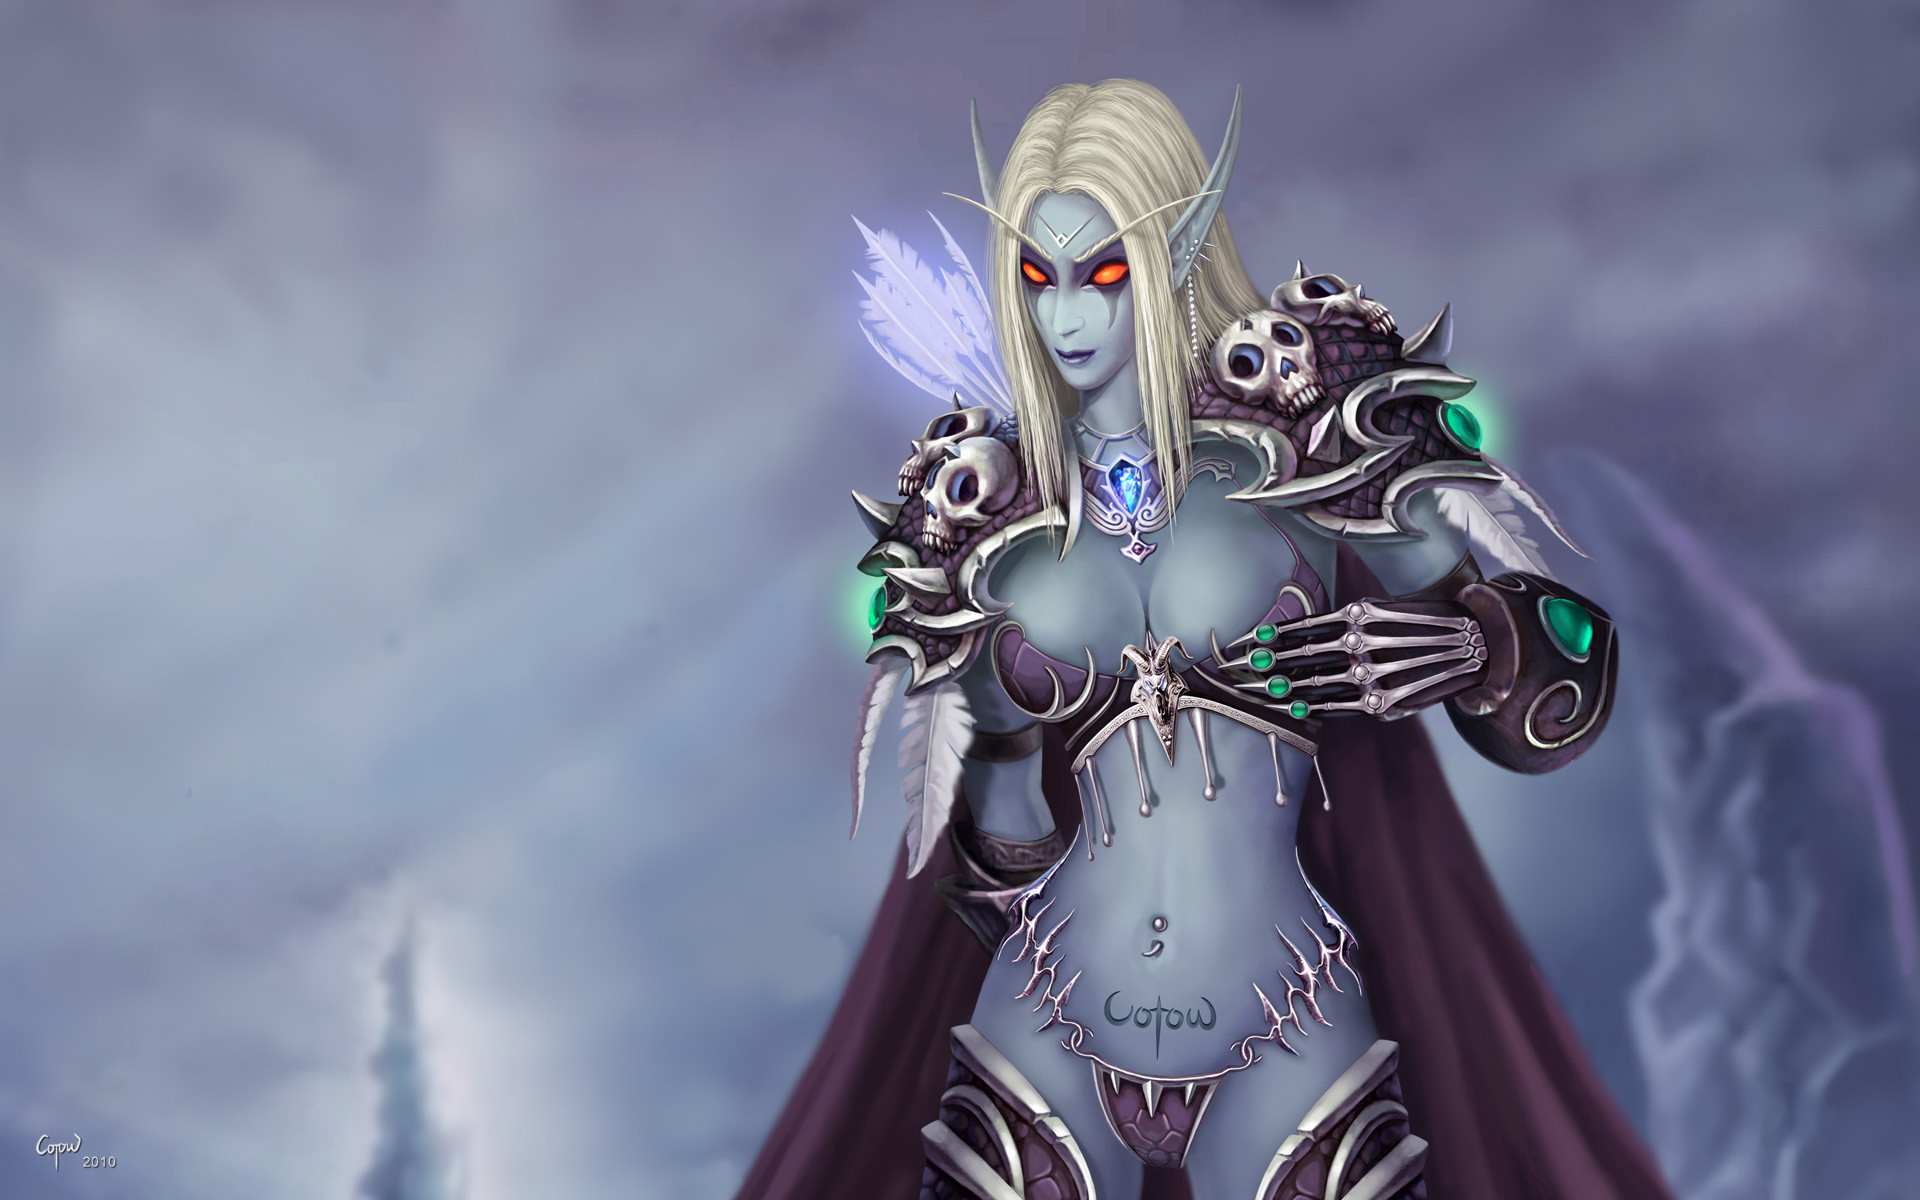 Sylvanas images Lady Sylvanas HD wallpaper and background photos